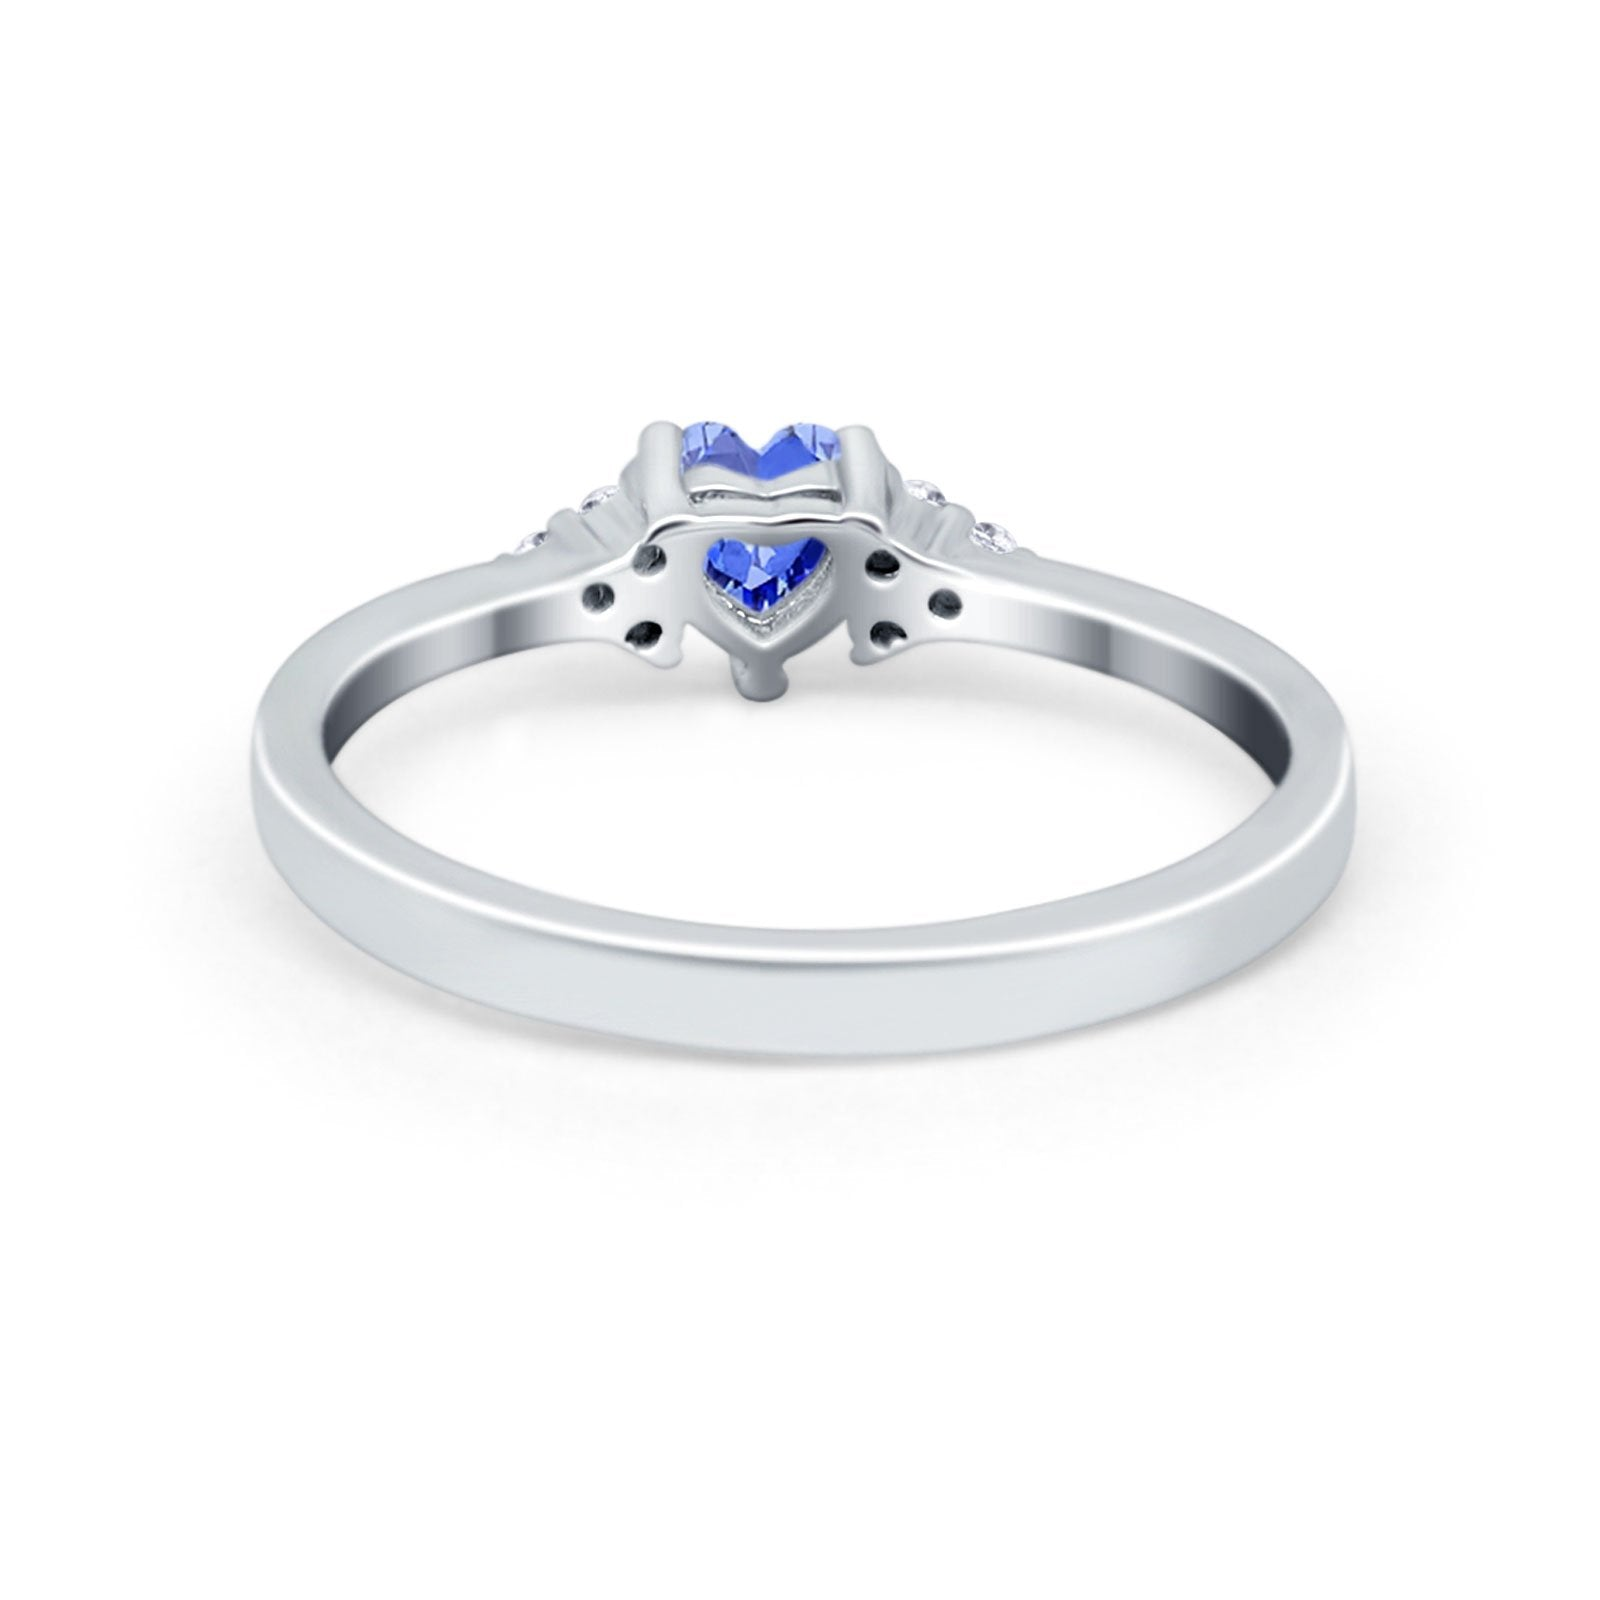 Engagement Heart Promise Ring Round Simulated Cubic Zirconia 925 Sterling Silver